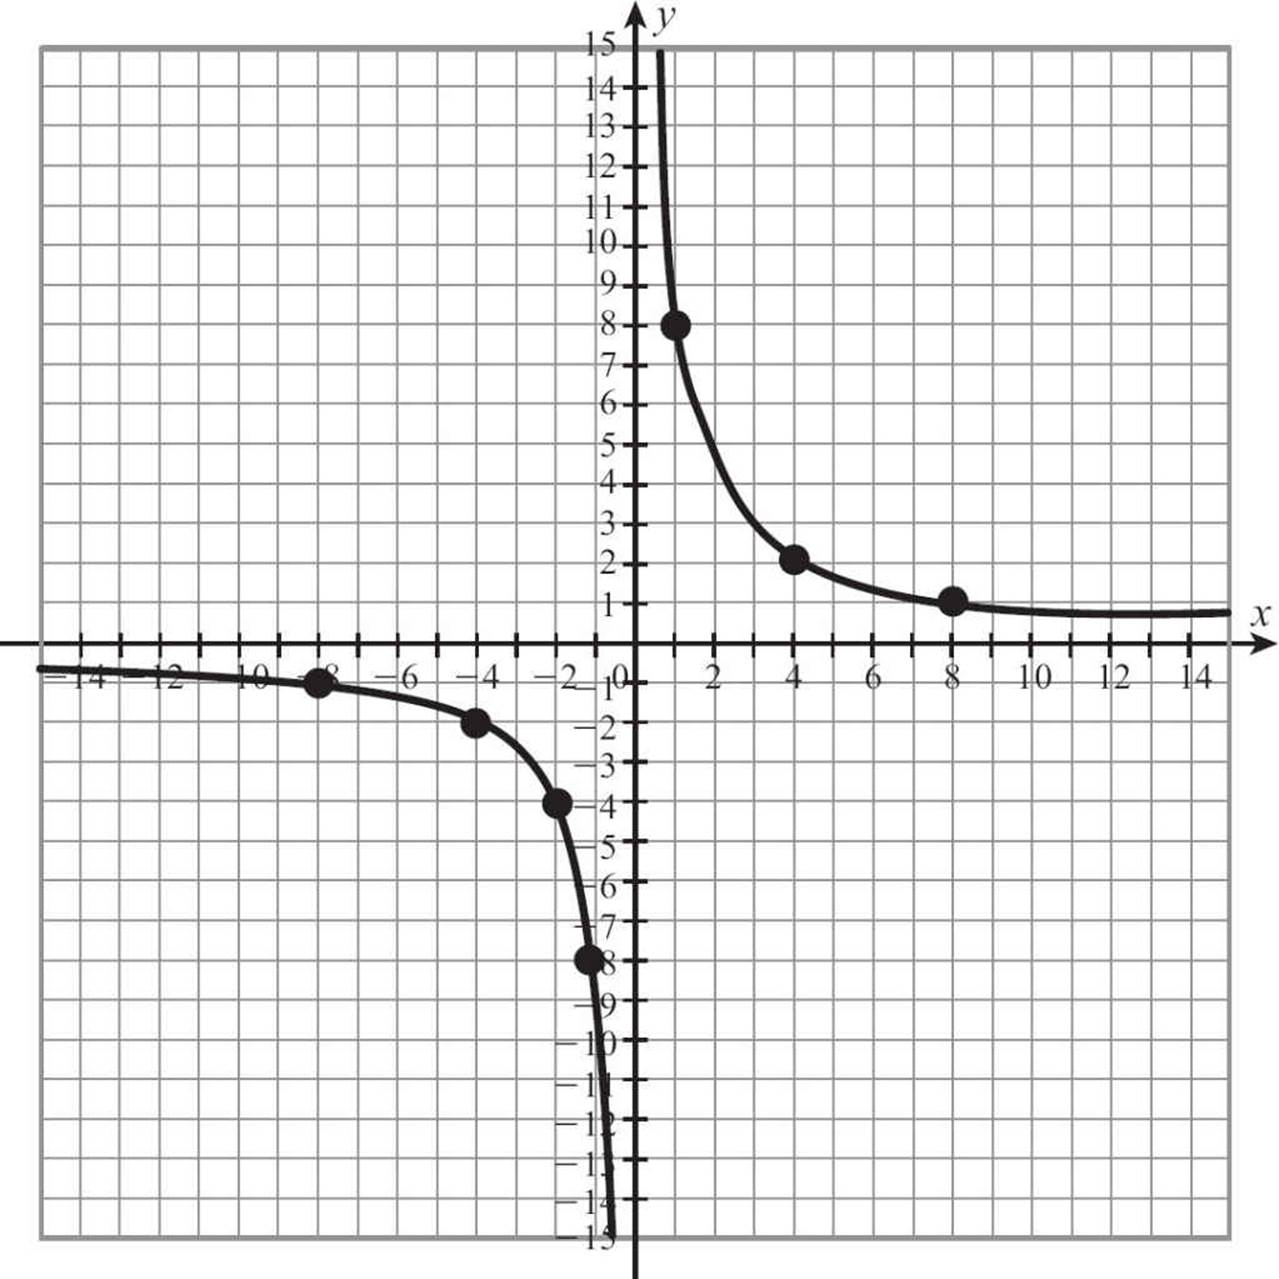 worksheet Graph Paper X And Y Axis graph paper for algebra prime factorization tree using a ruler math with x and y axis clock face image690 x